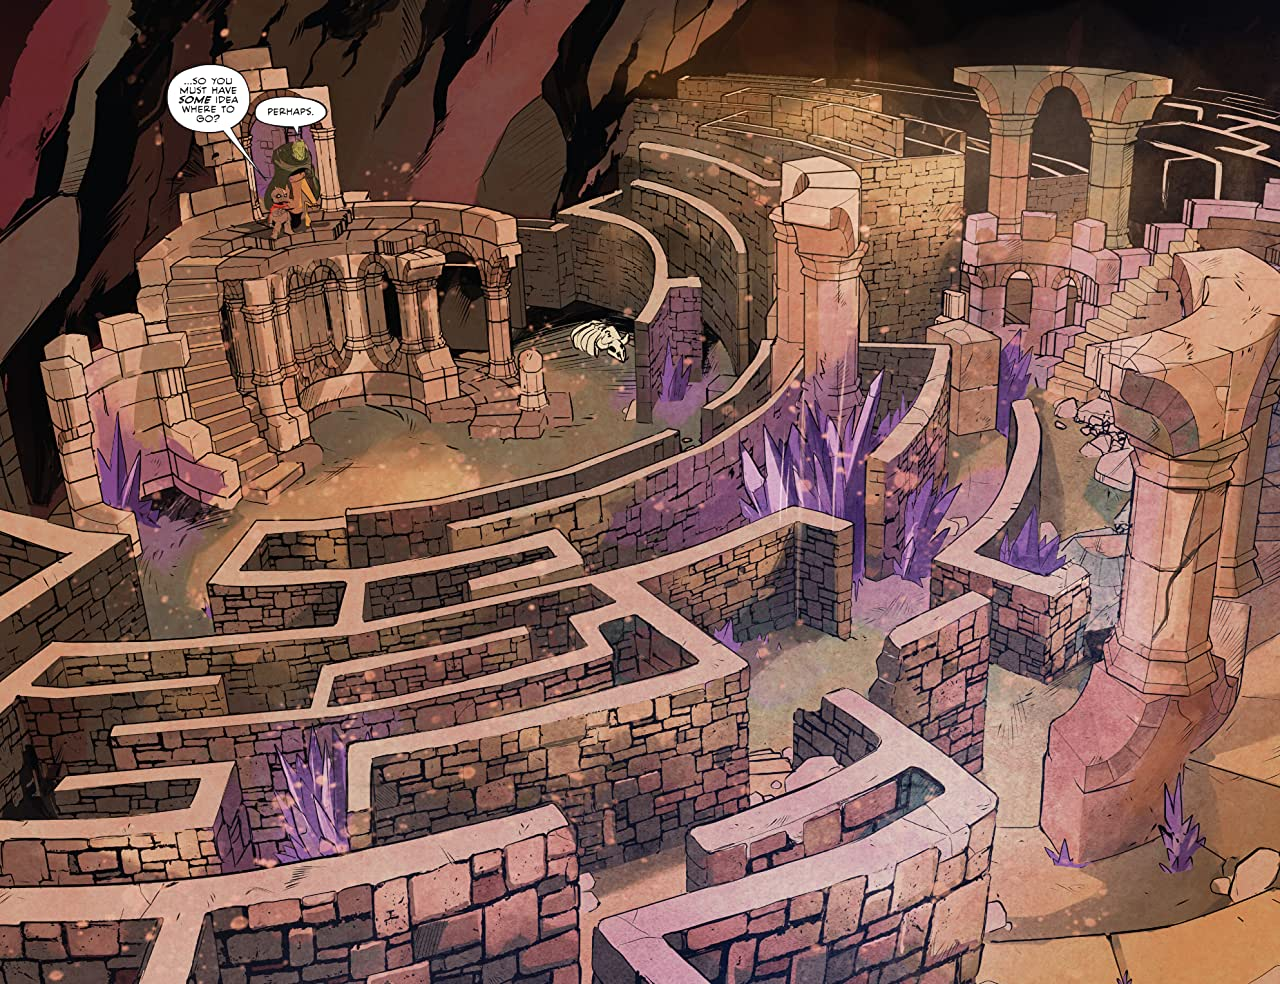 Canto & The City of Giants #2 (of 3)